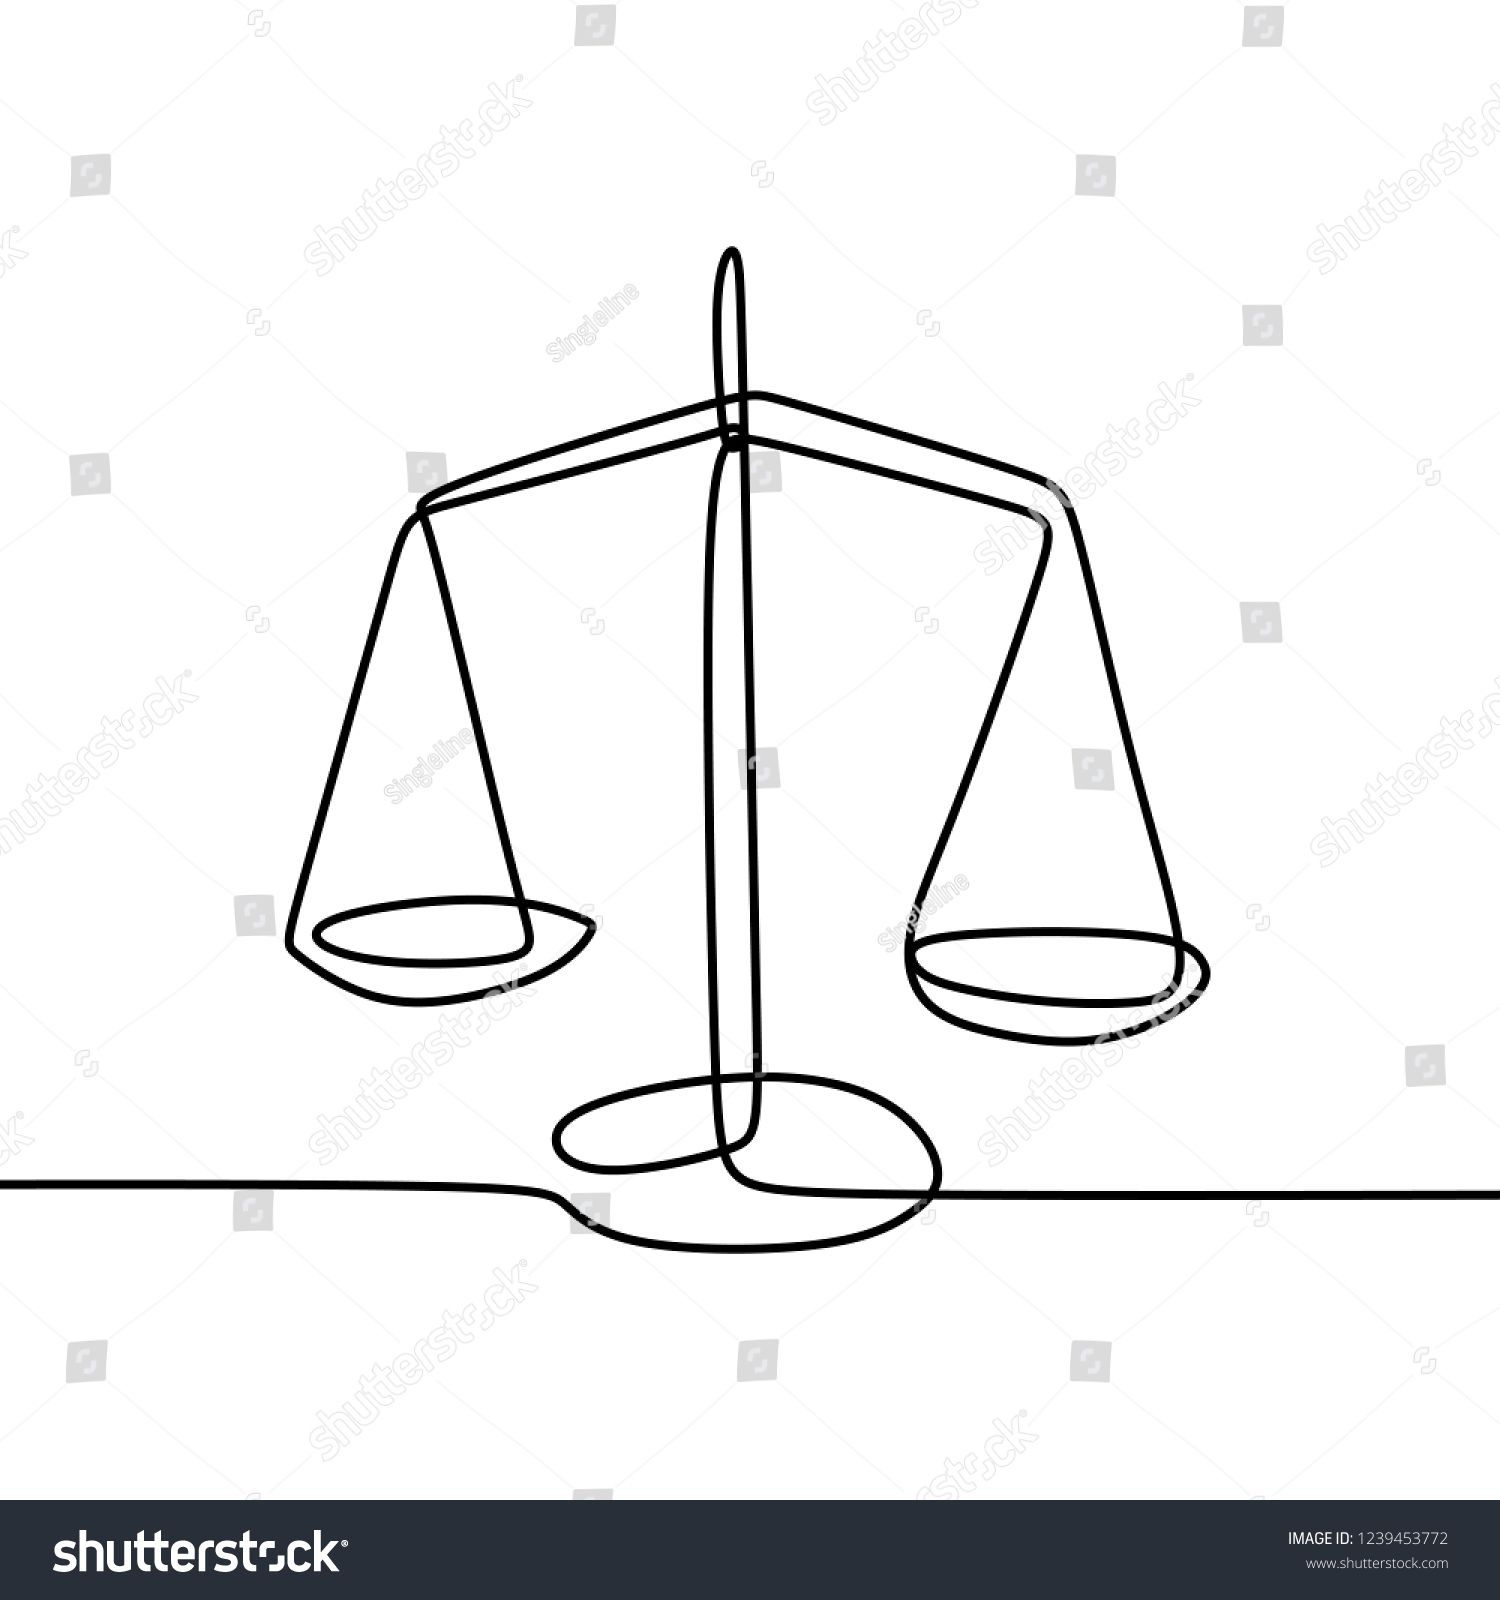 Weight Balance Symbol Libra Or Law Identity One Line Drawing Style Vector Illustrationlibra Law Symbol We Balance Tattoo Hand Embroidery Art Line Art Drawings